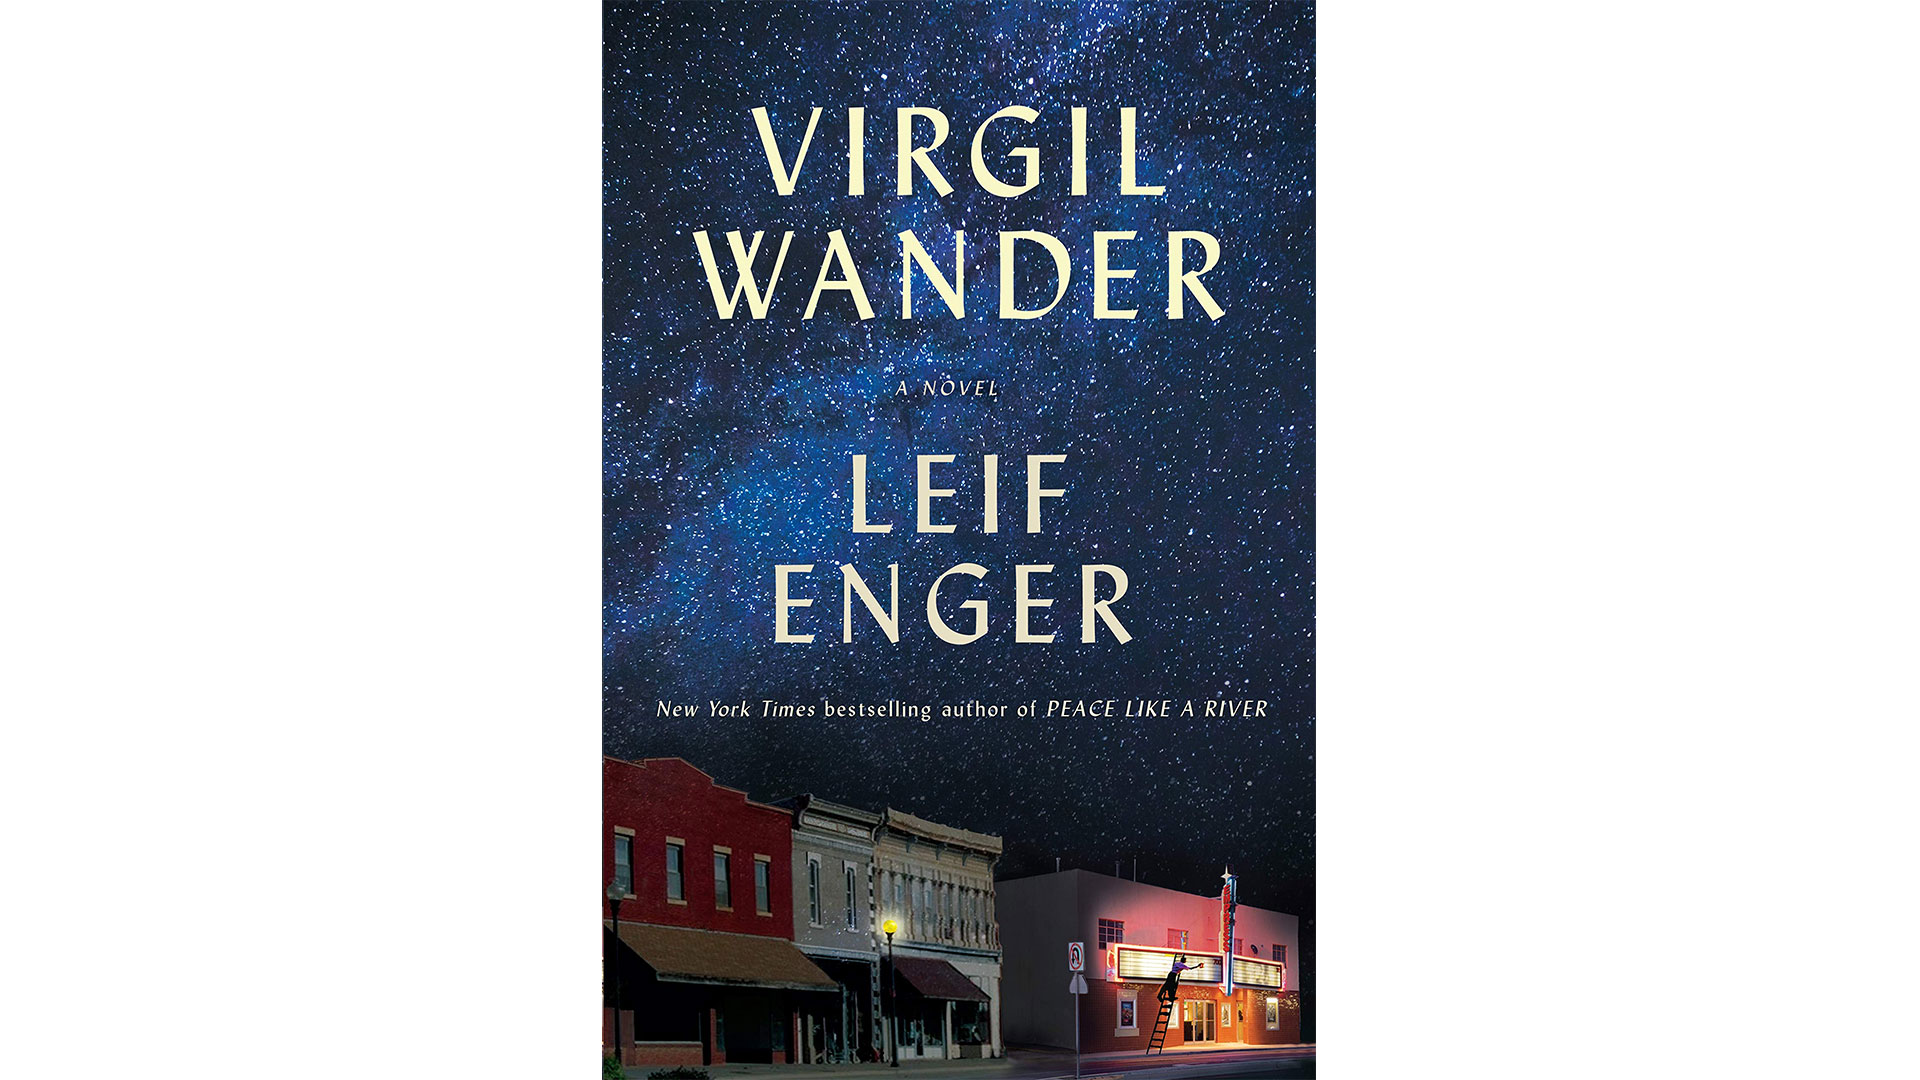 Amazon Best Books 2018 Virgil Wander